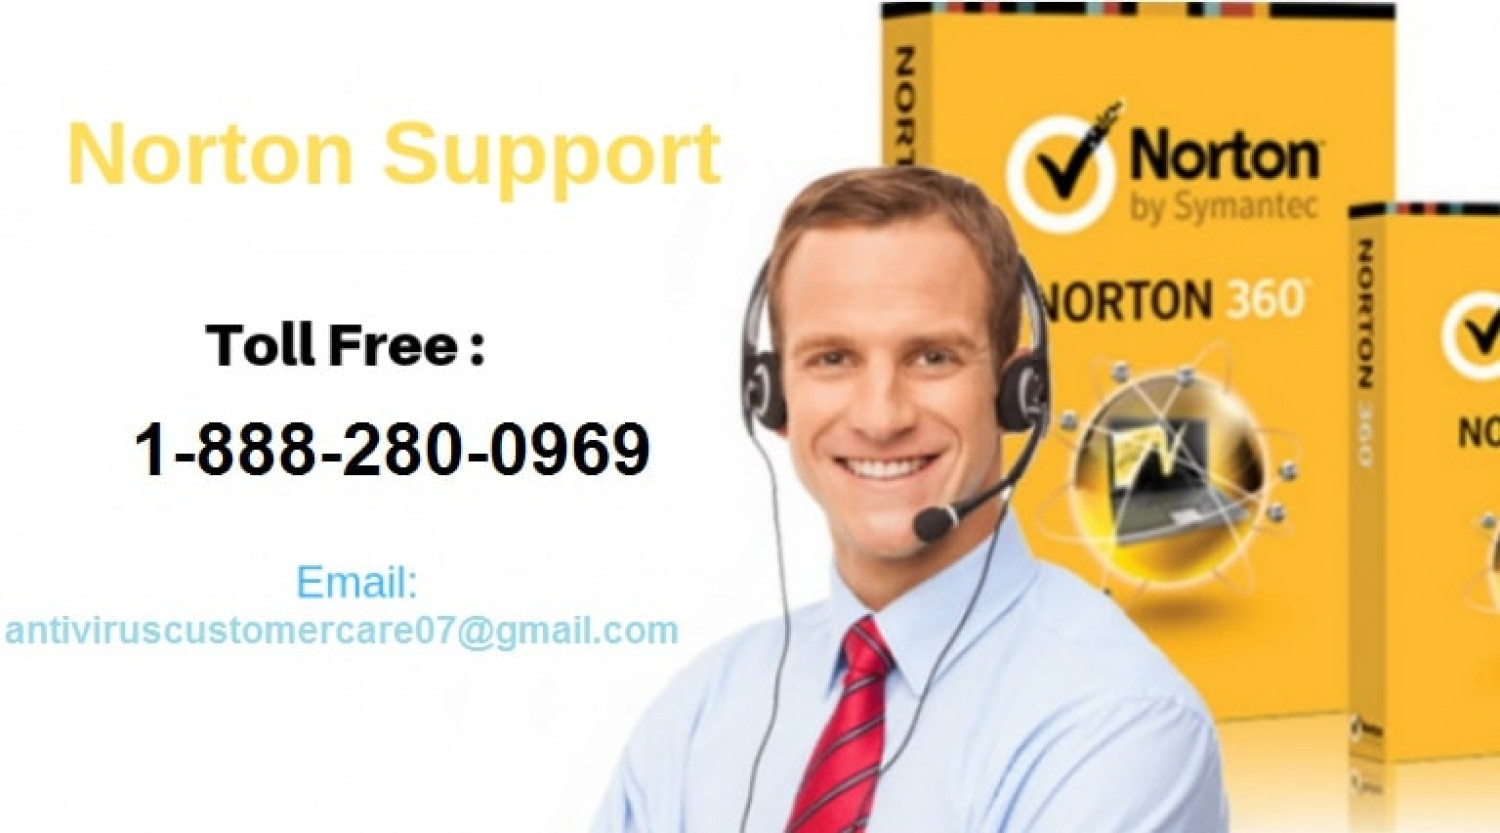 Norton Antivirus Customer Support Number Infographic